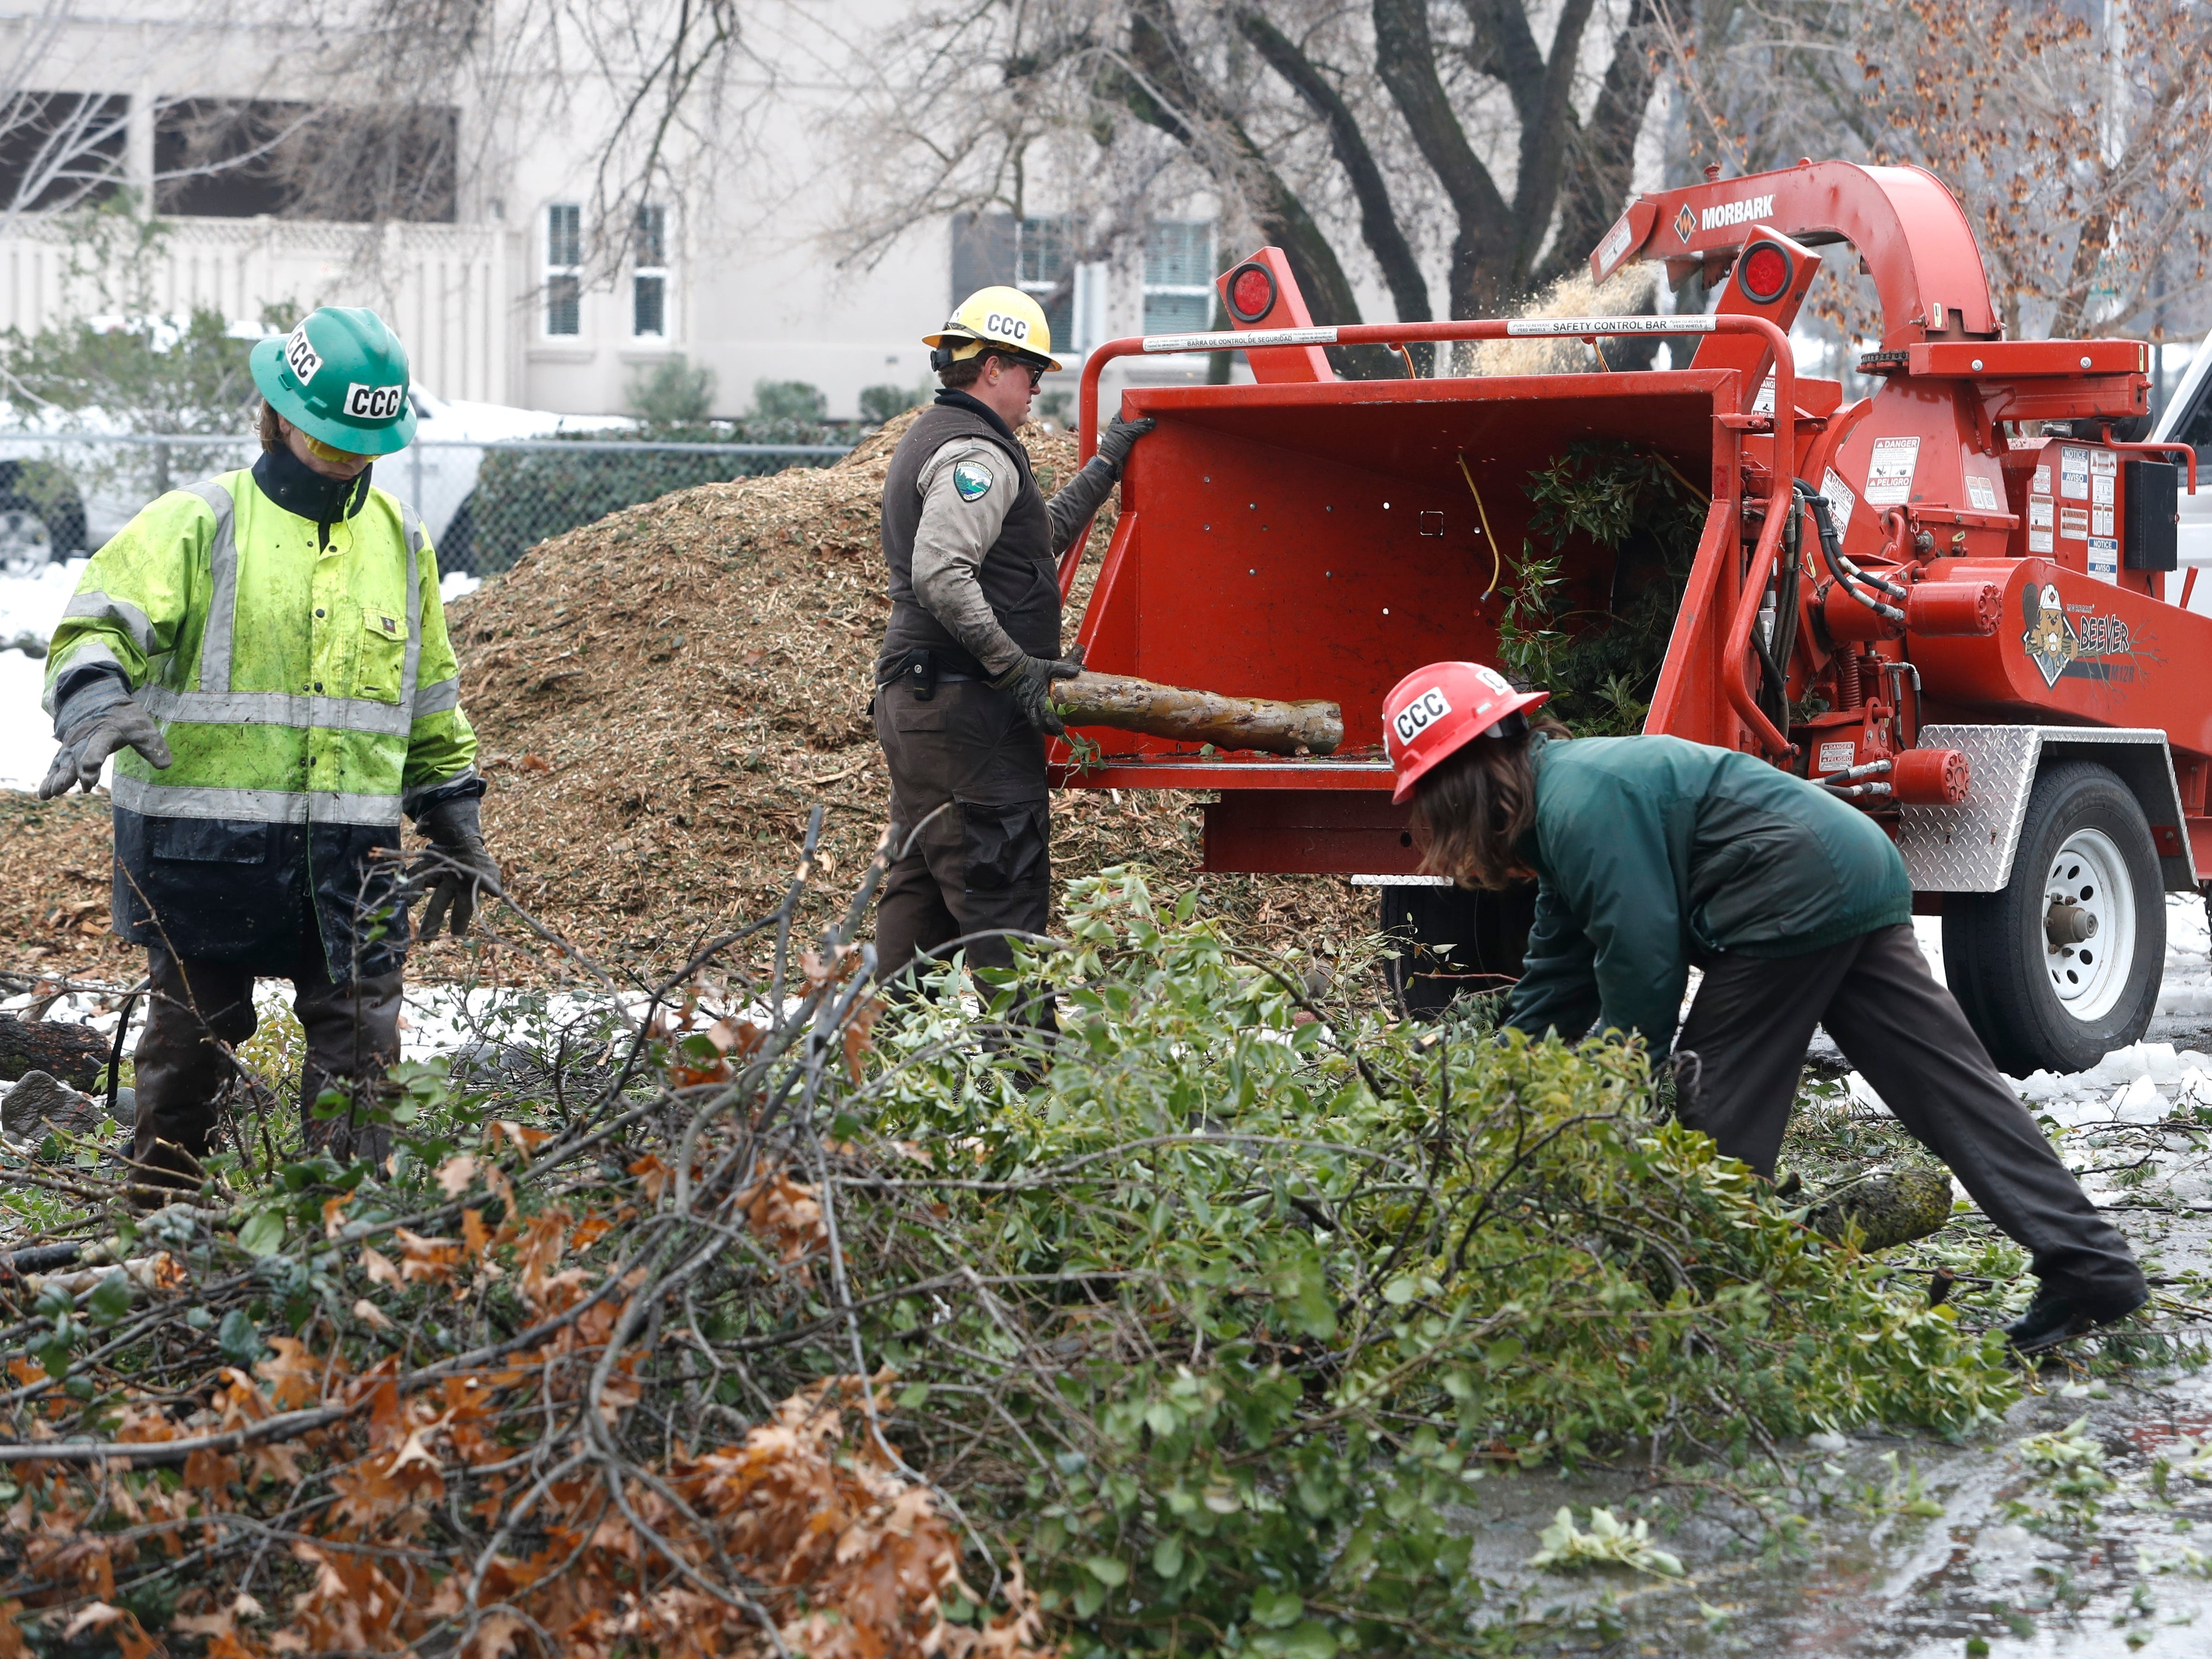 A crew from the Shasta-Cascade California Conservation Corps puts downed tree limbs and brush through a chipper Thursday, Feb. 14, 2019, at Lake Redding Park, which was hard hit by this week's snowstorm.